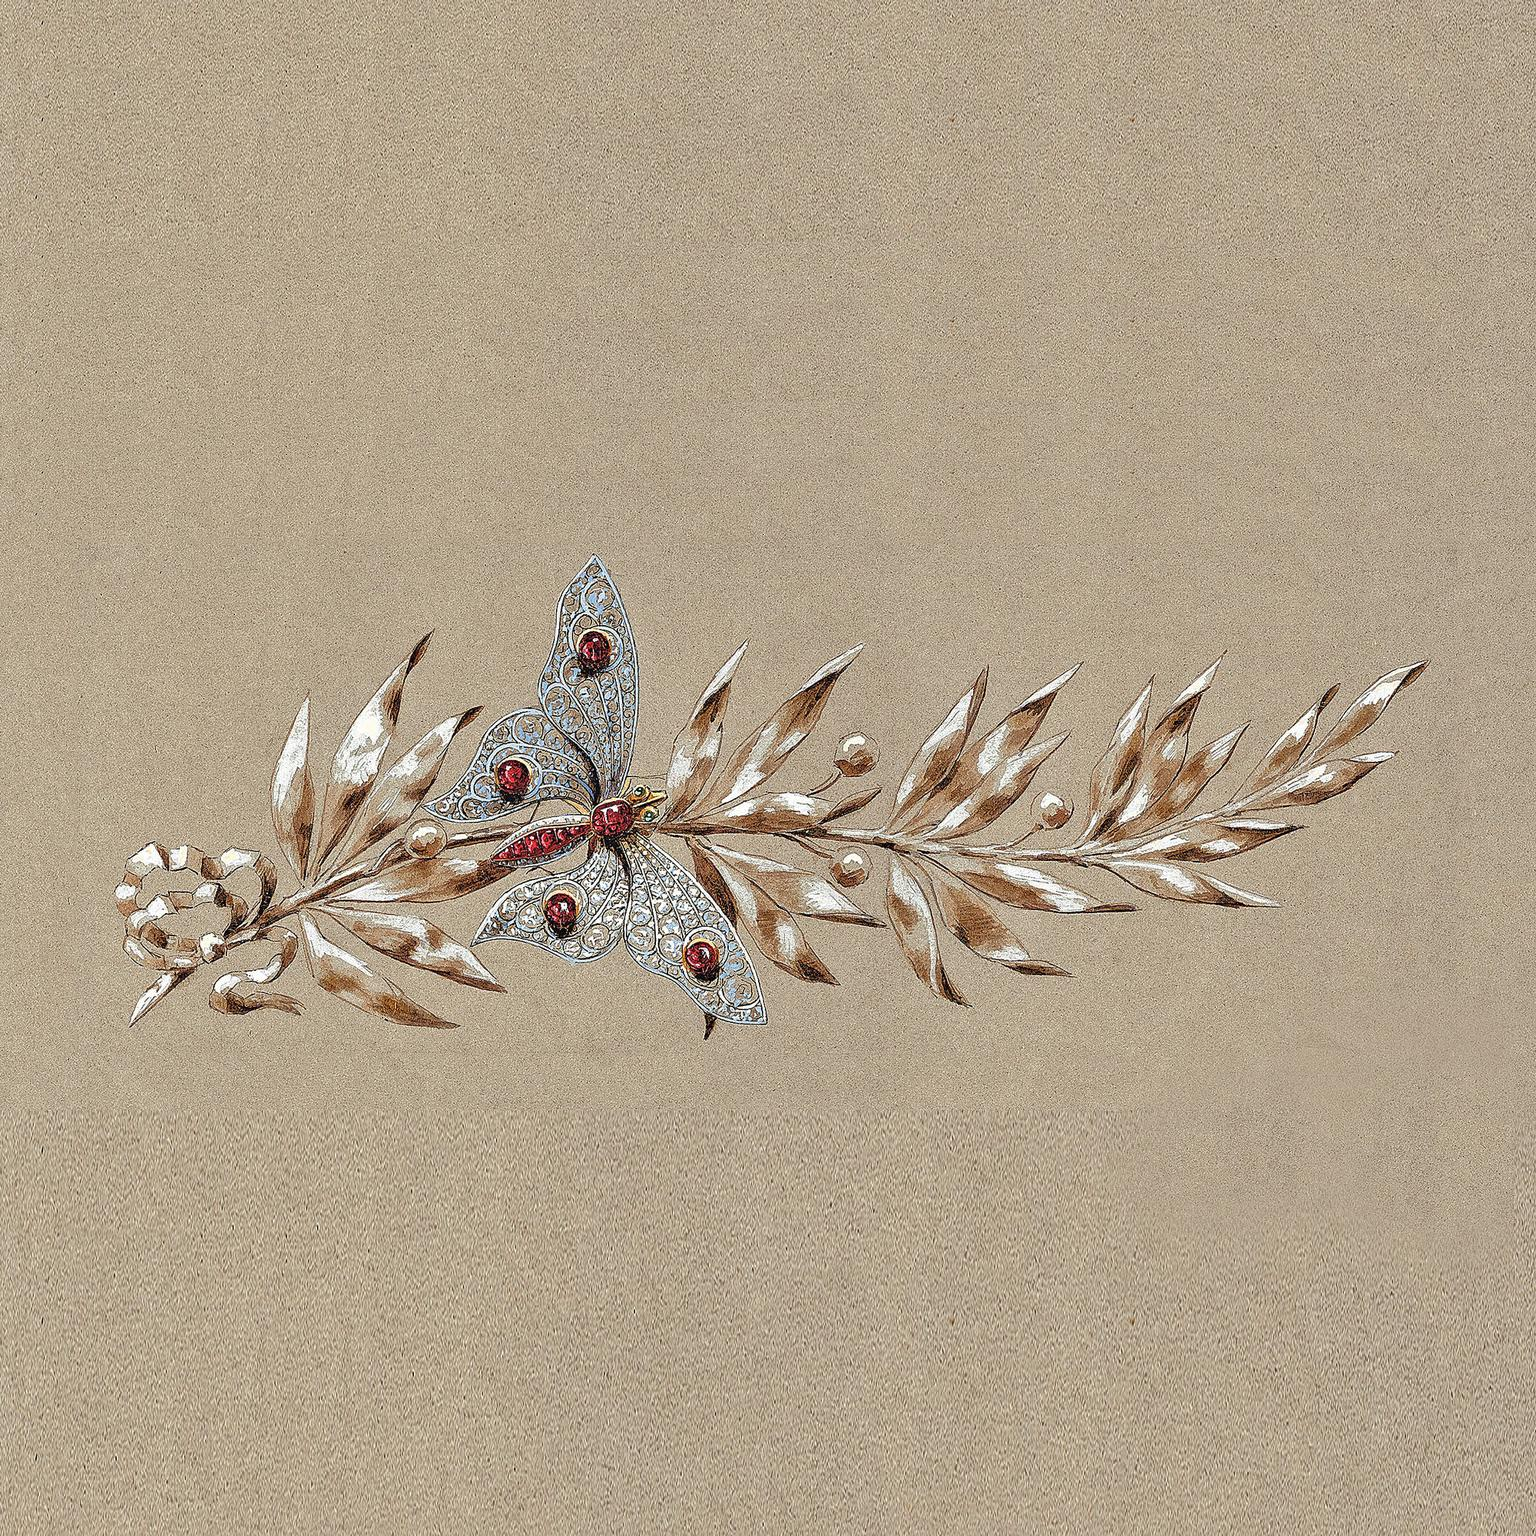 Preparatory sketch of a Chaumet brooch